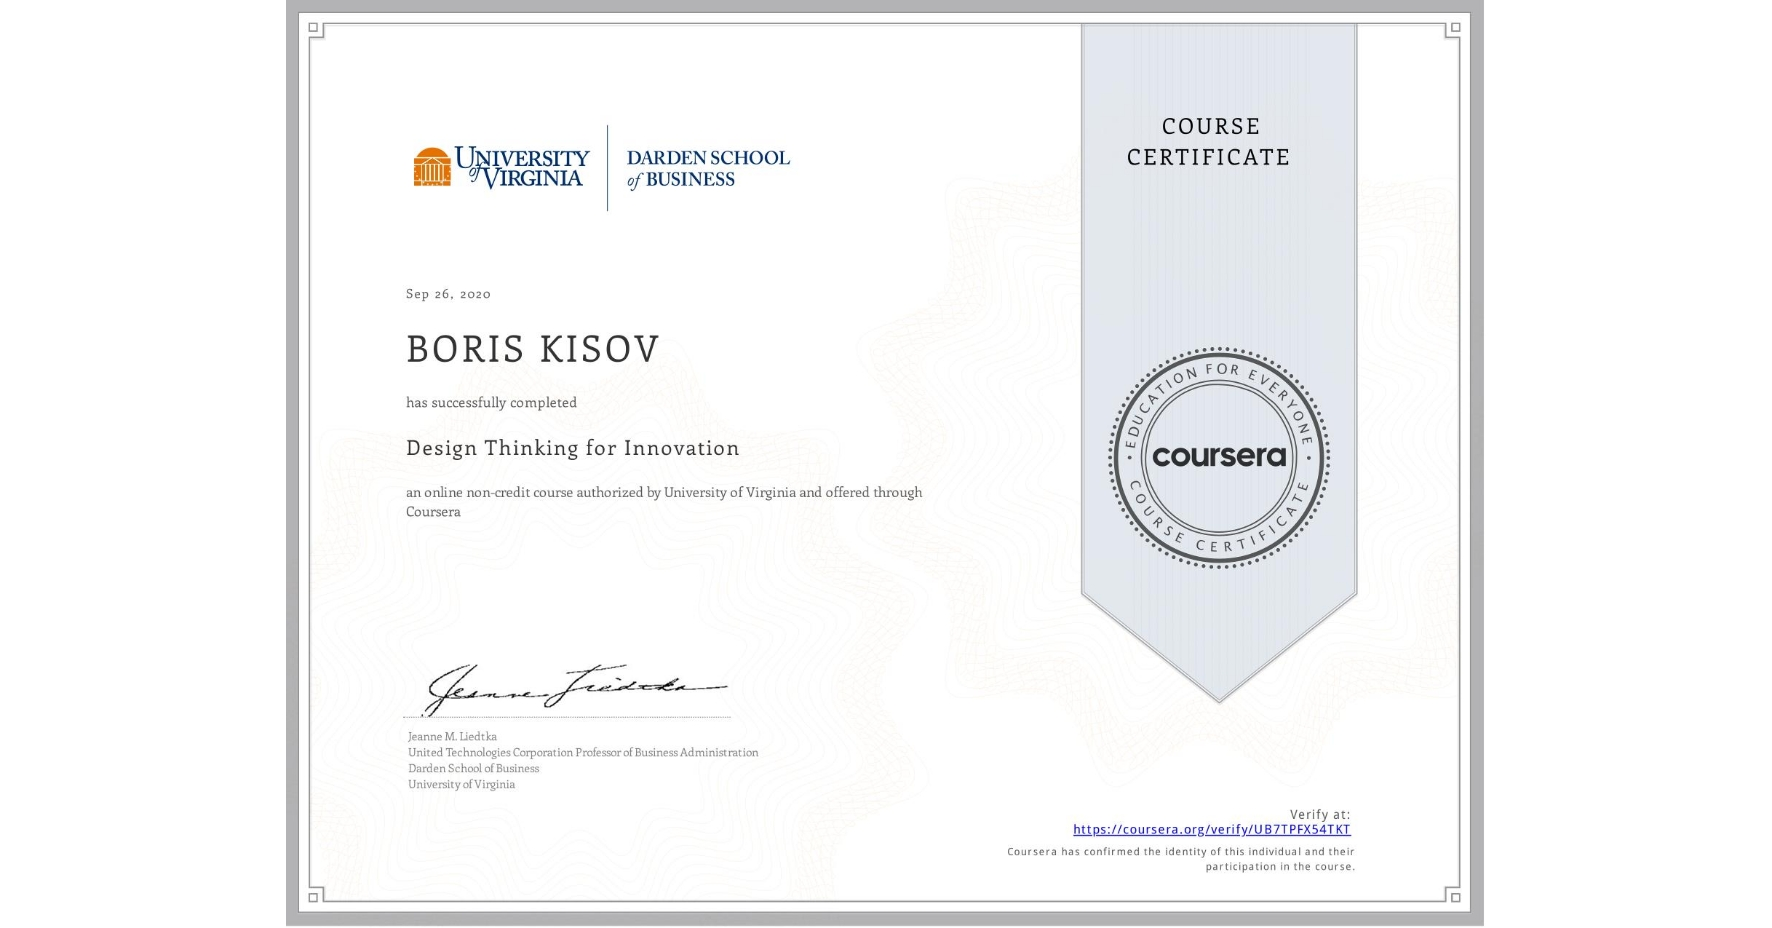 View certificate for BORIS KISOV, Design Thinking for Innovation, an online non-credit course authorized by University of Virginia and offered through Coursera